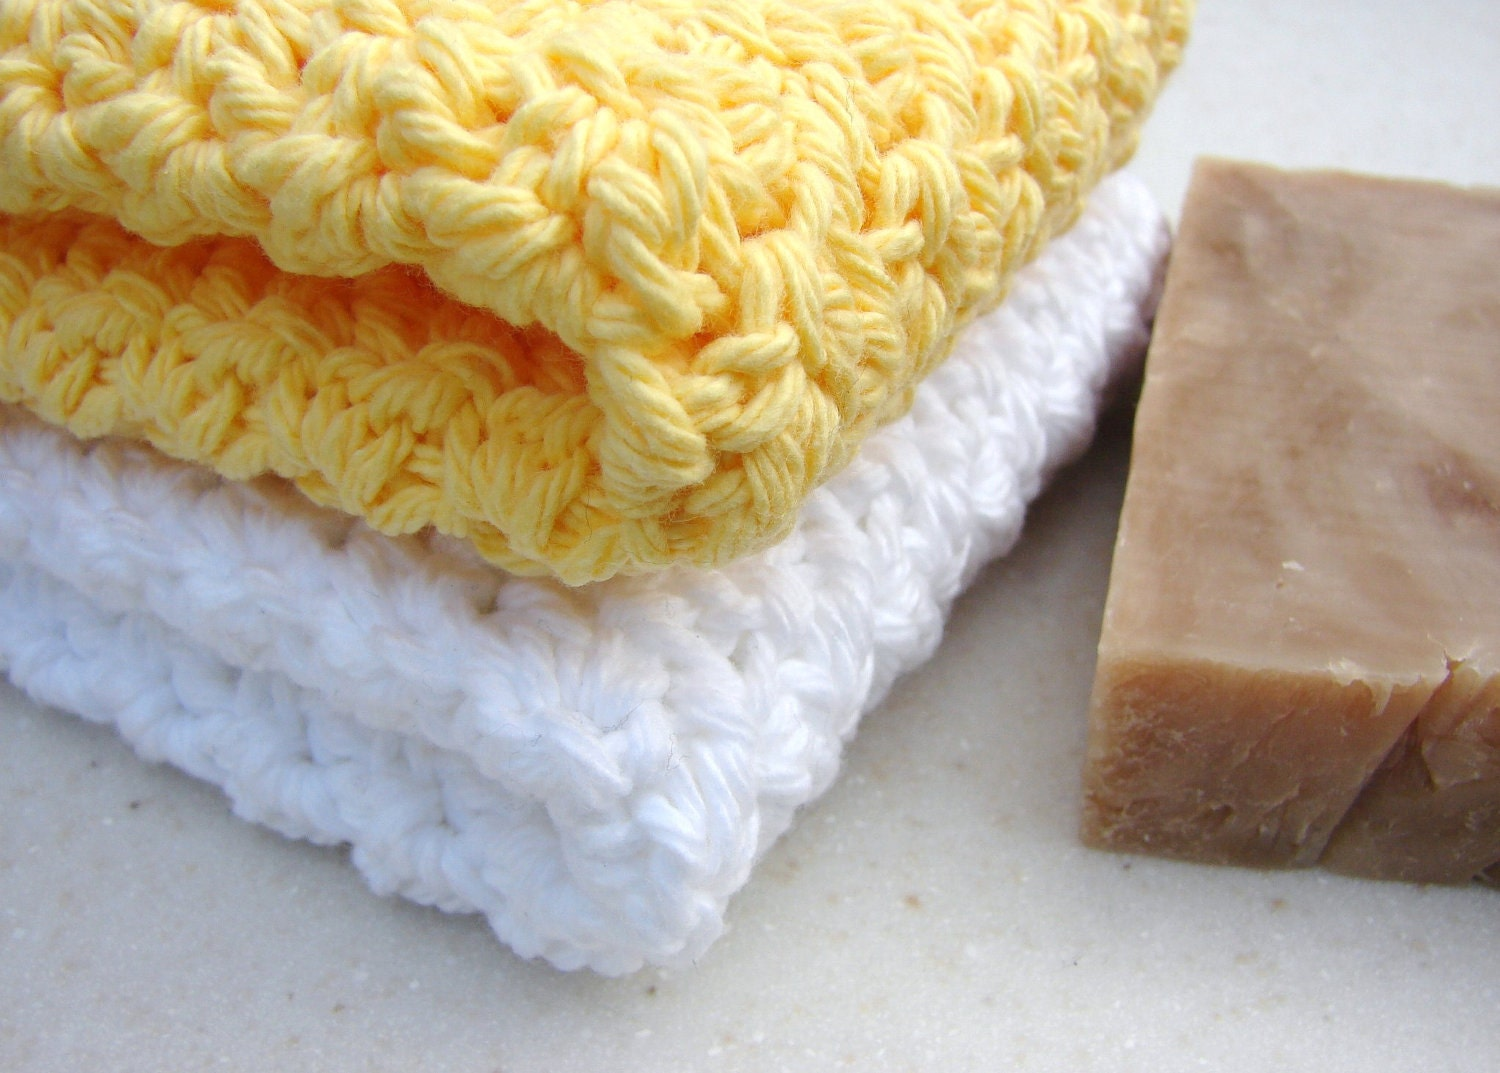 Cleansing Facial Washcloths Yellow White Soft Cotton Scrubbies Set of 2, Choose Your Colors, Made to Order, Wedding Gift